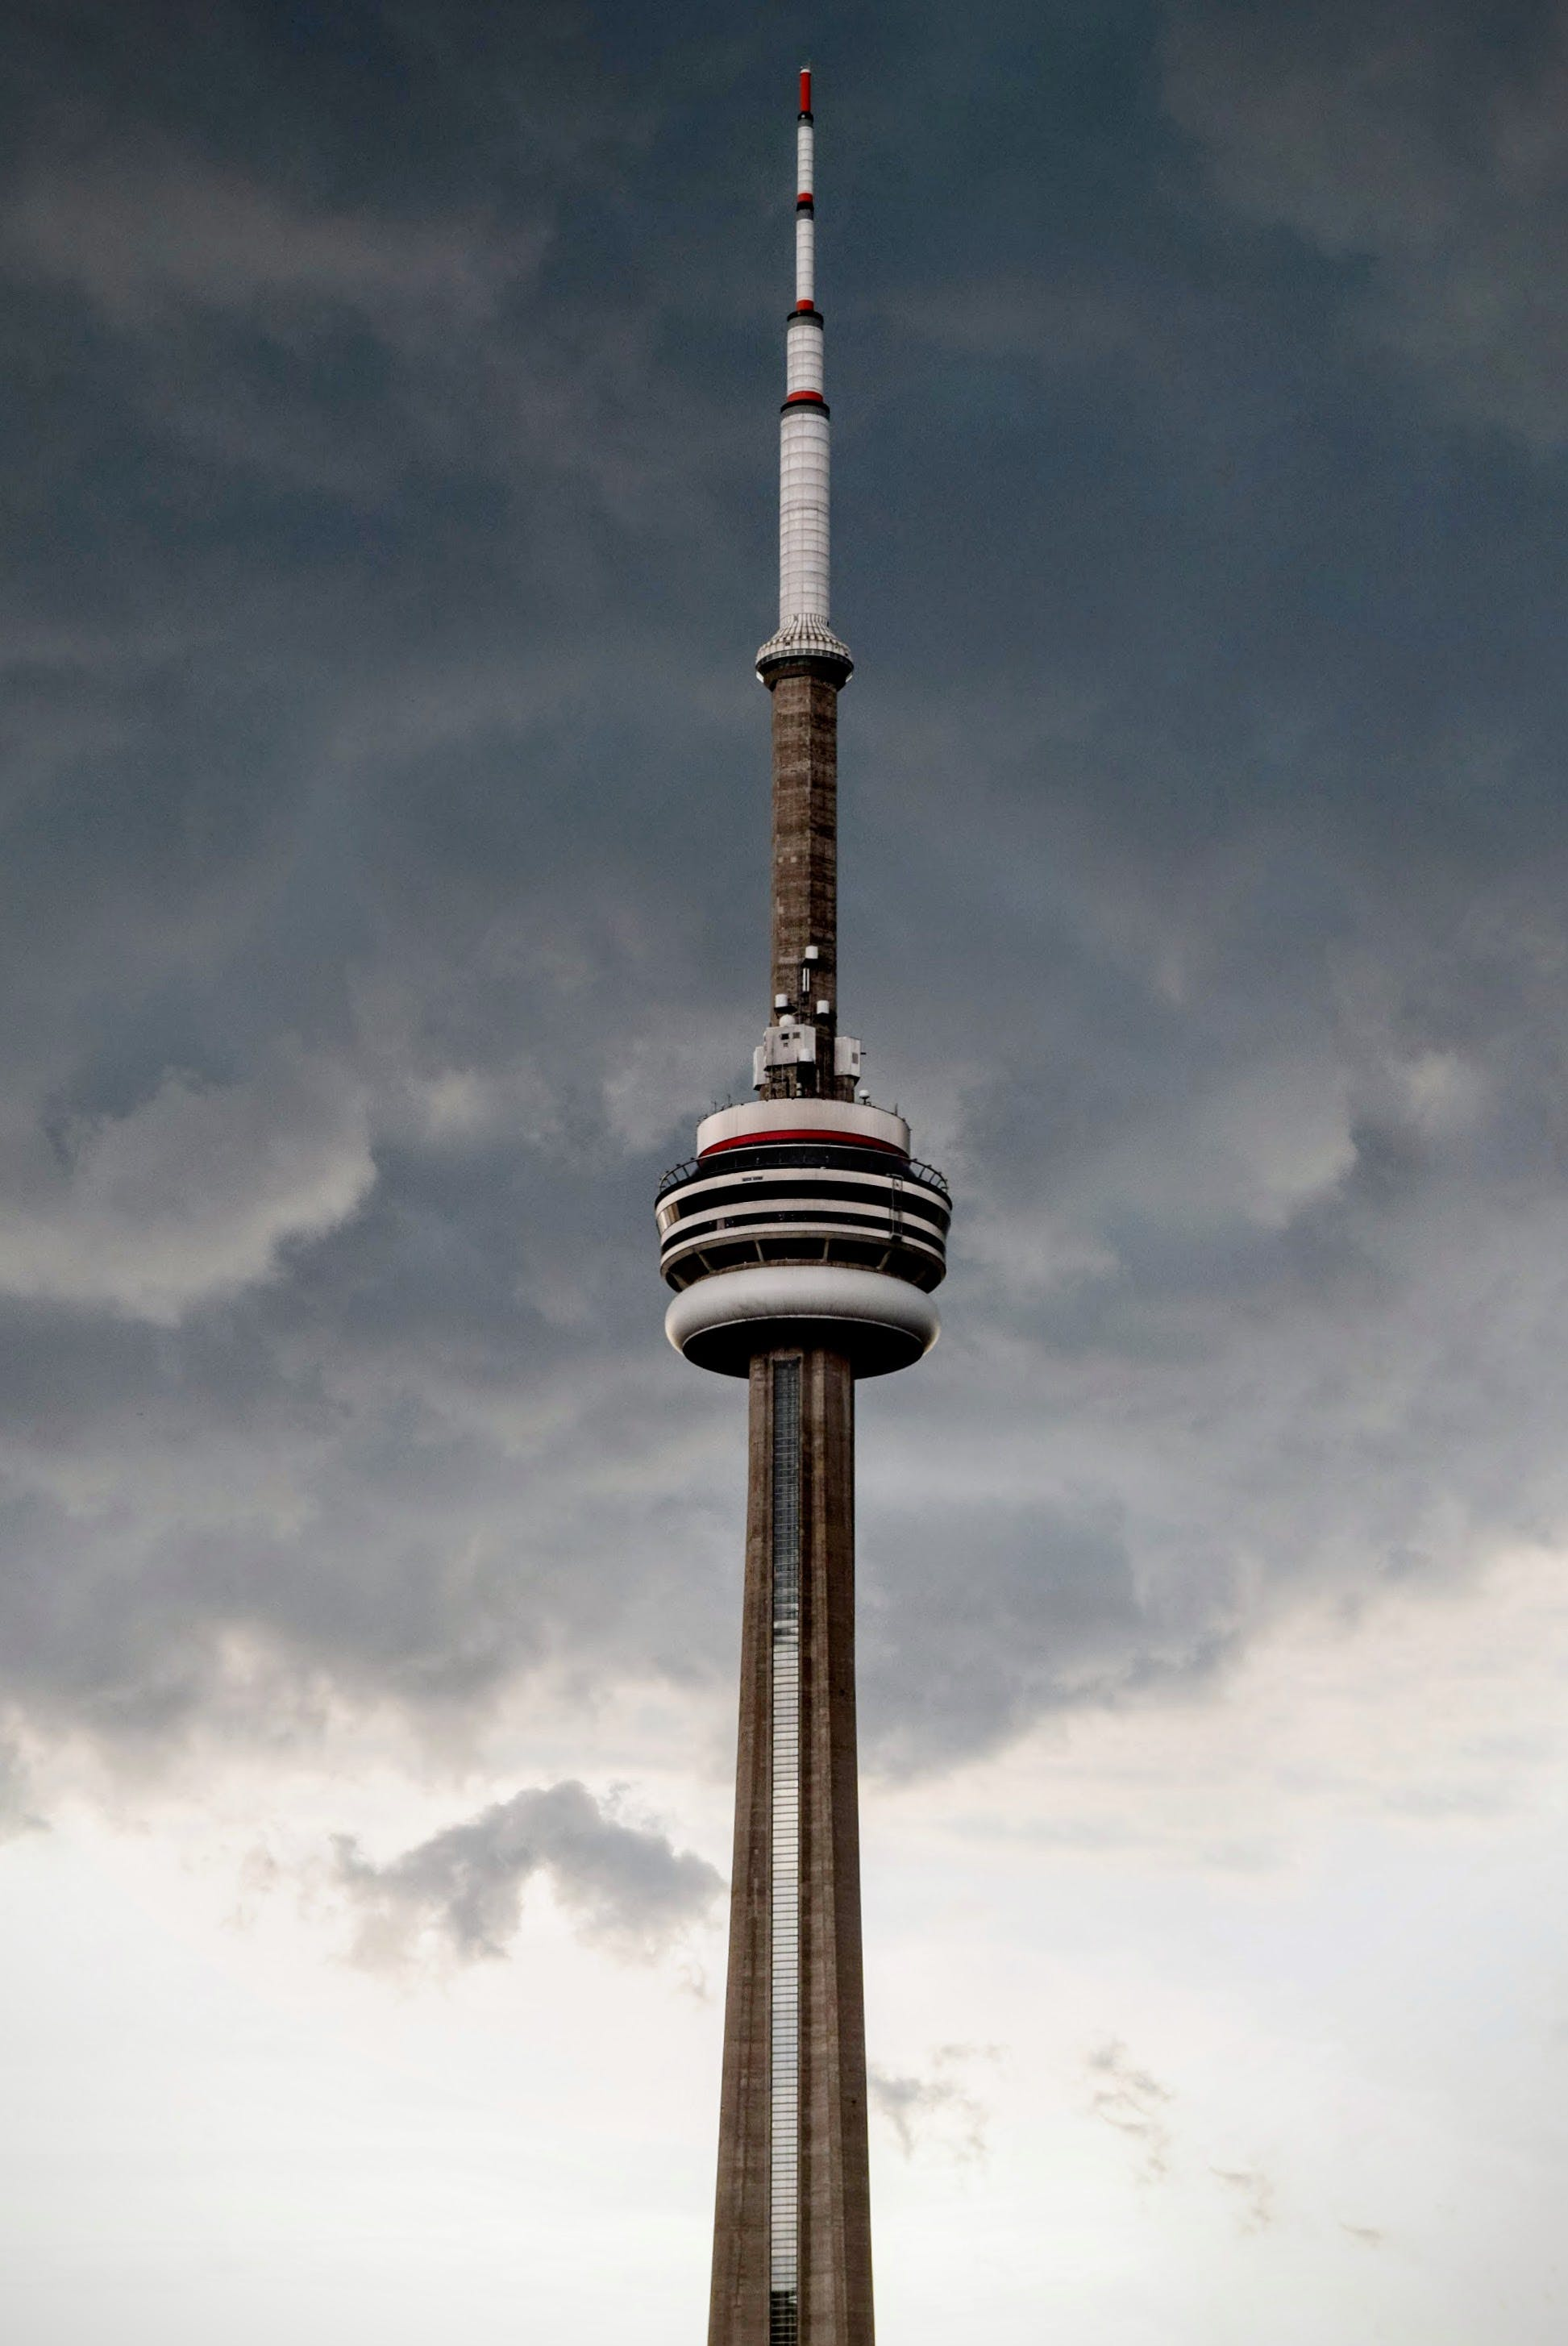 Cn Tower Under Cloudy Sky